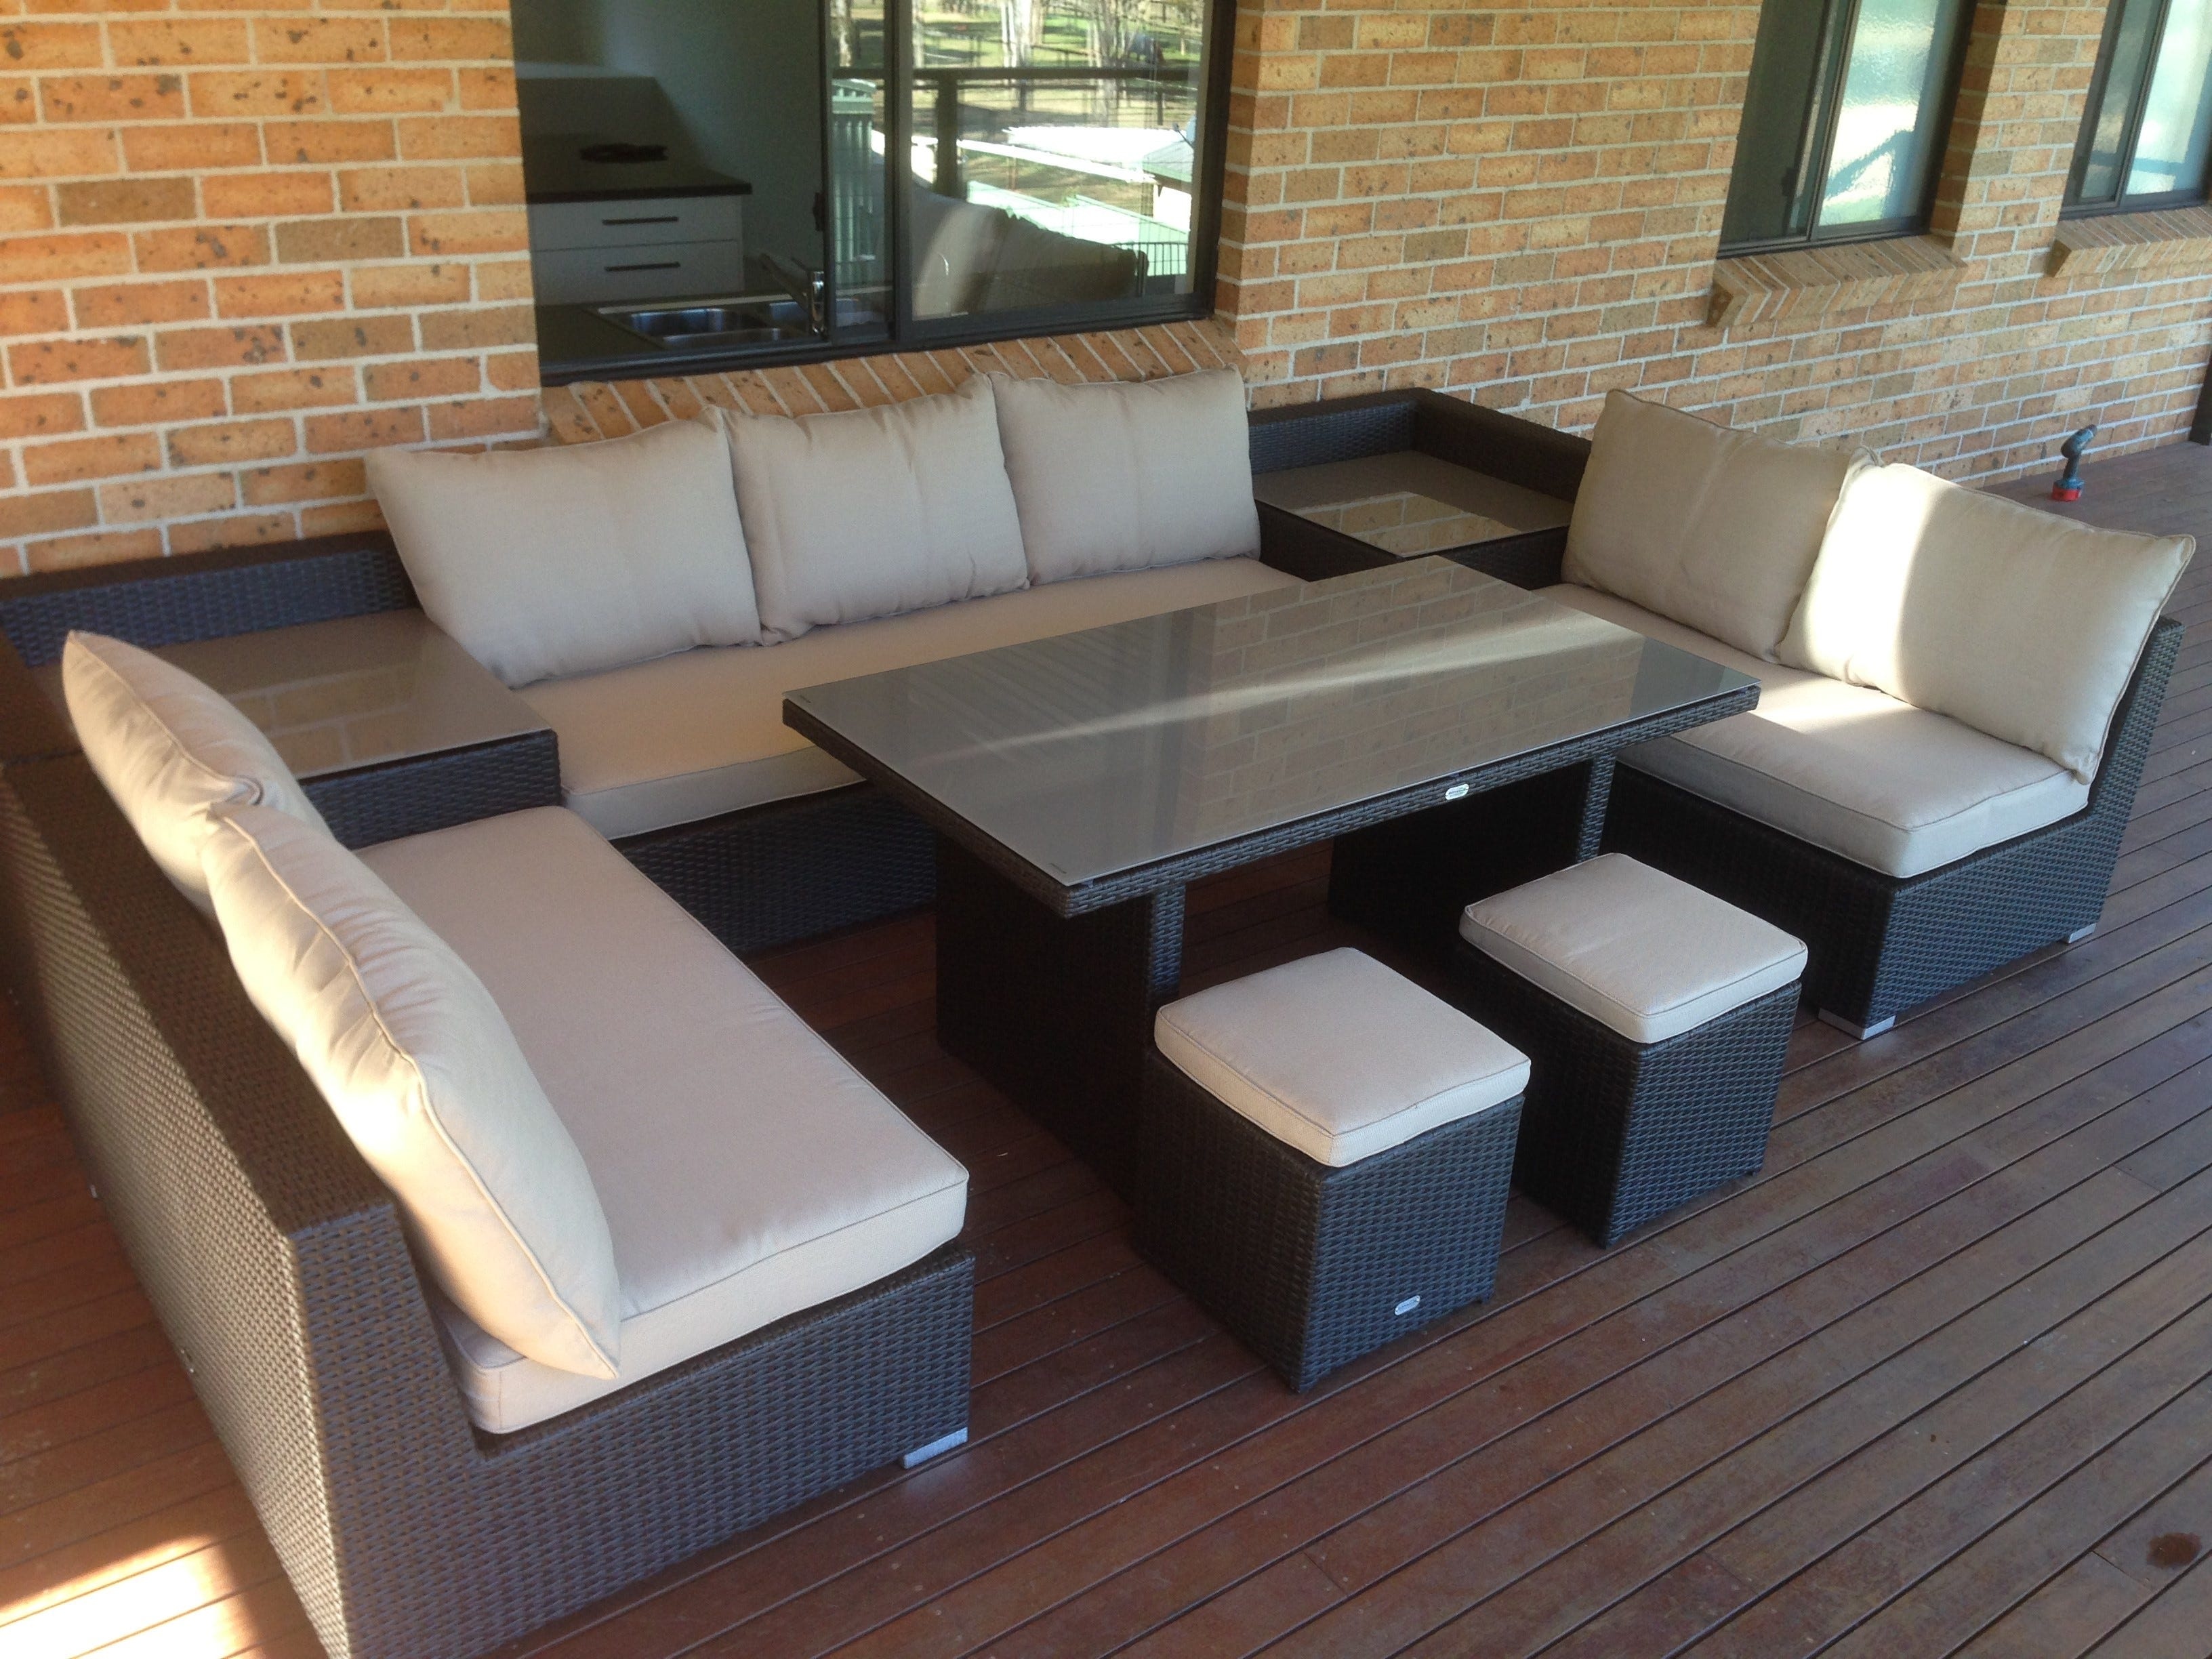 ideas room and concrete designs fantastic design size unilock outdoor cupboard full furniture living contemporary large patio format pavers lounge dining sectional modern of sofa